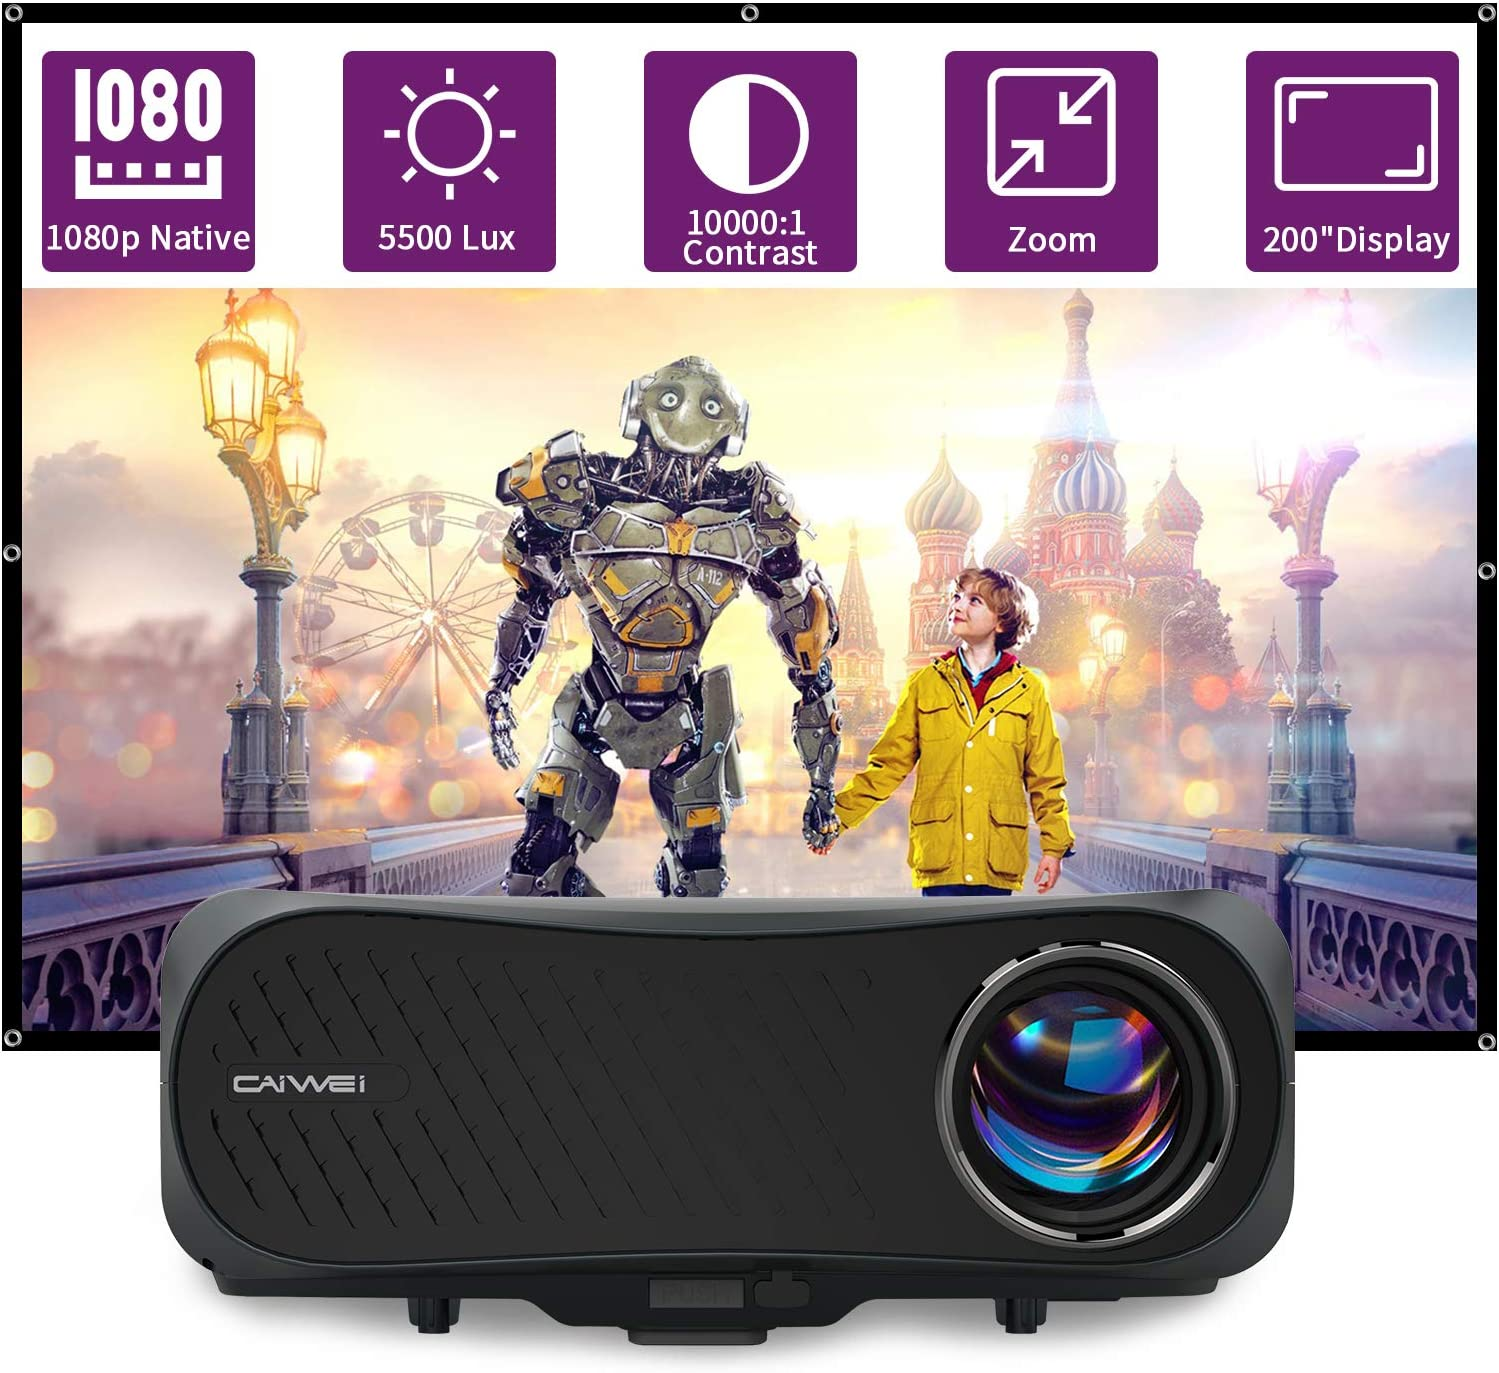 1080P Projector,5500 Lumen LCD HD 200 Inch Display Outdoor Movie Home Theater Gaming Projector,HDMI Smart Phone Projector Support Zoom Keystone for USB Stick DVD Player Laptop AV Audio VGA Roku Mac